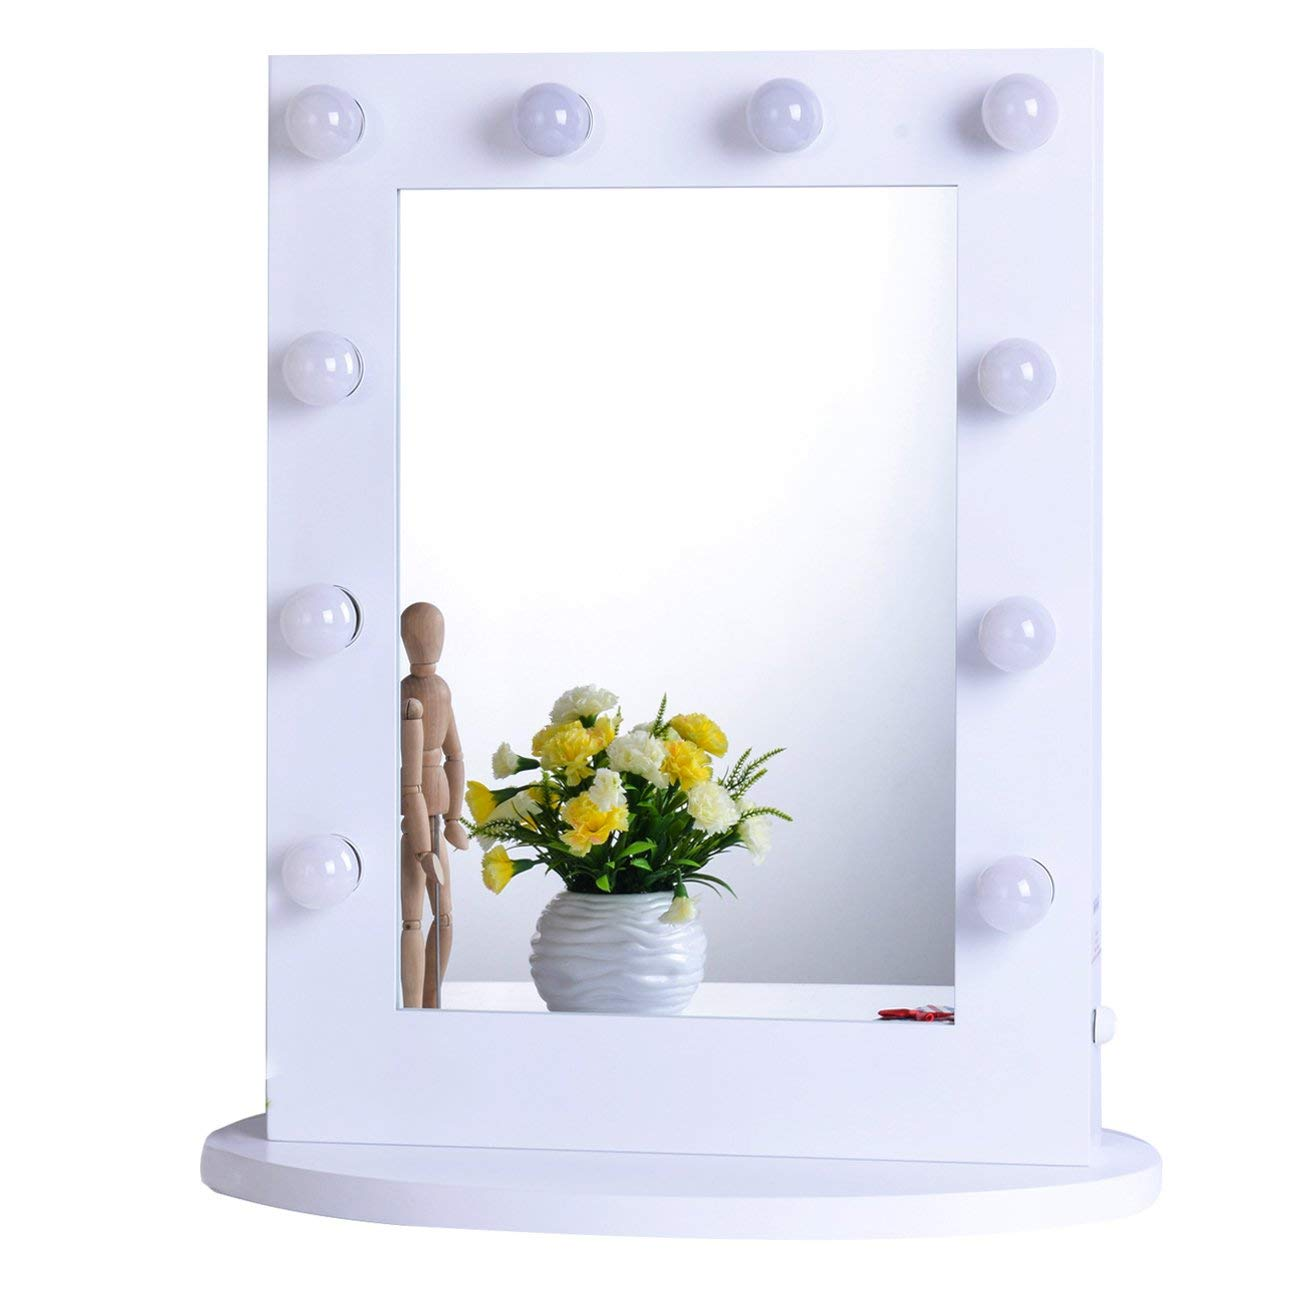 Chende Gloss White Hollywood Makeup Vanity Mirror with Light Tabletops Lighted Mirror with LED Bulbs, Illuminated Wall Mounted Cosmetic Mirror